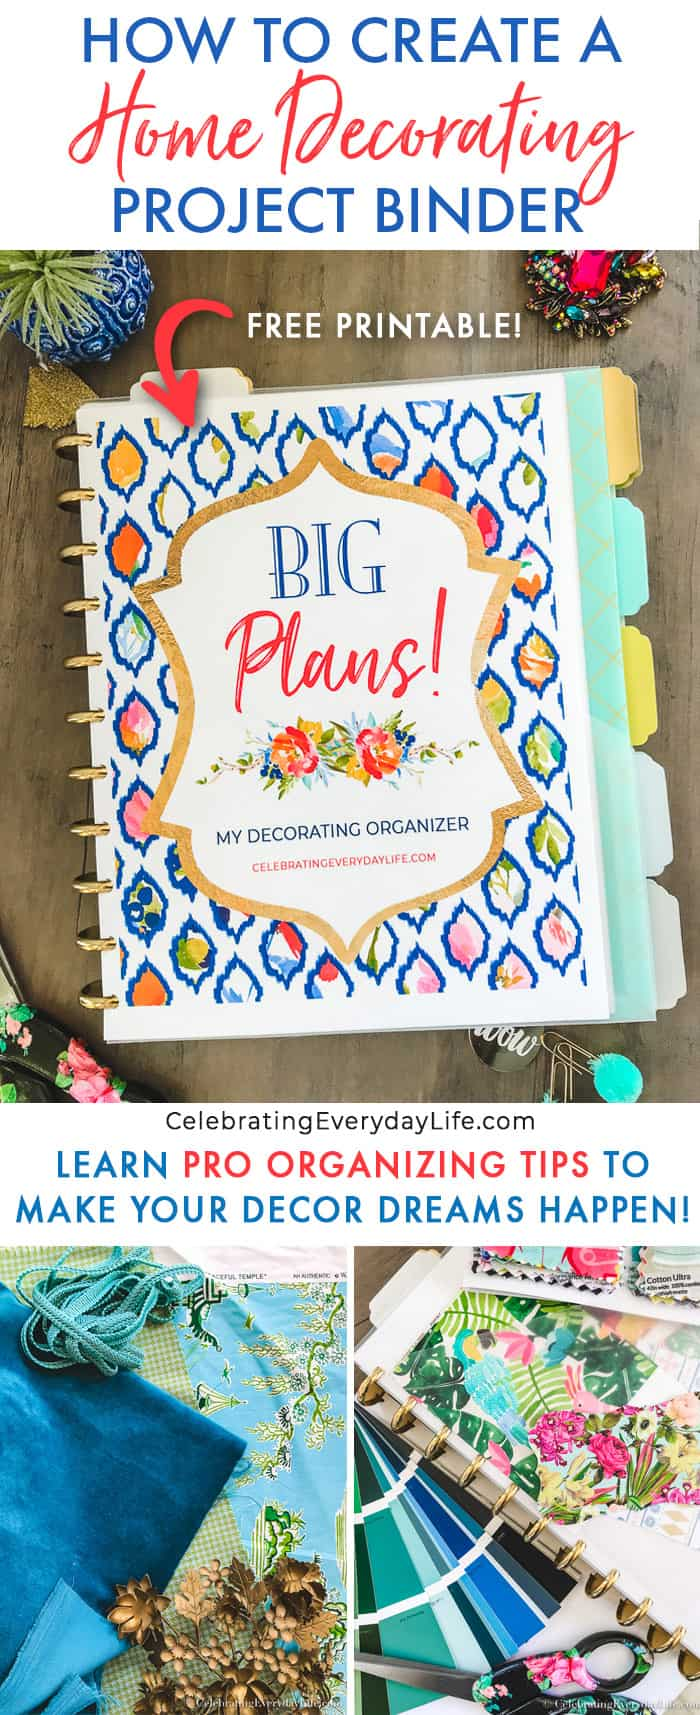 How to Create a Home Decorating Project Binder, Learn How to get organized to decorate your home yourself! CelebratingEverydayLife.com